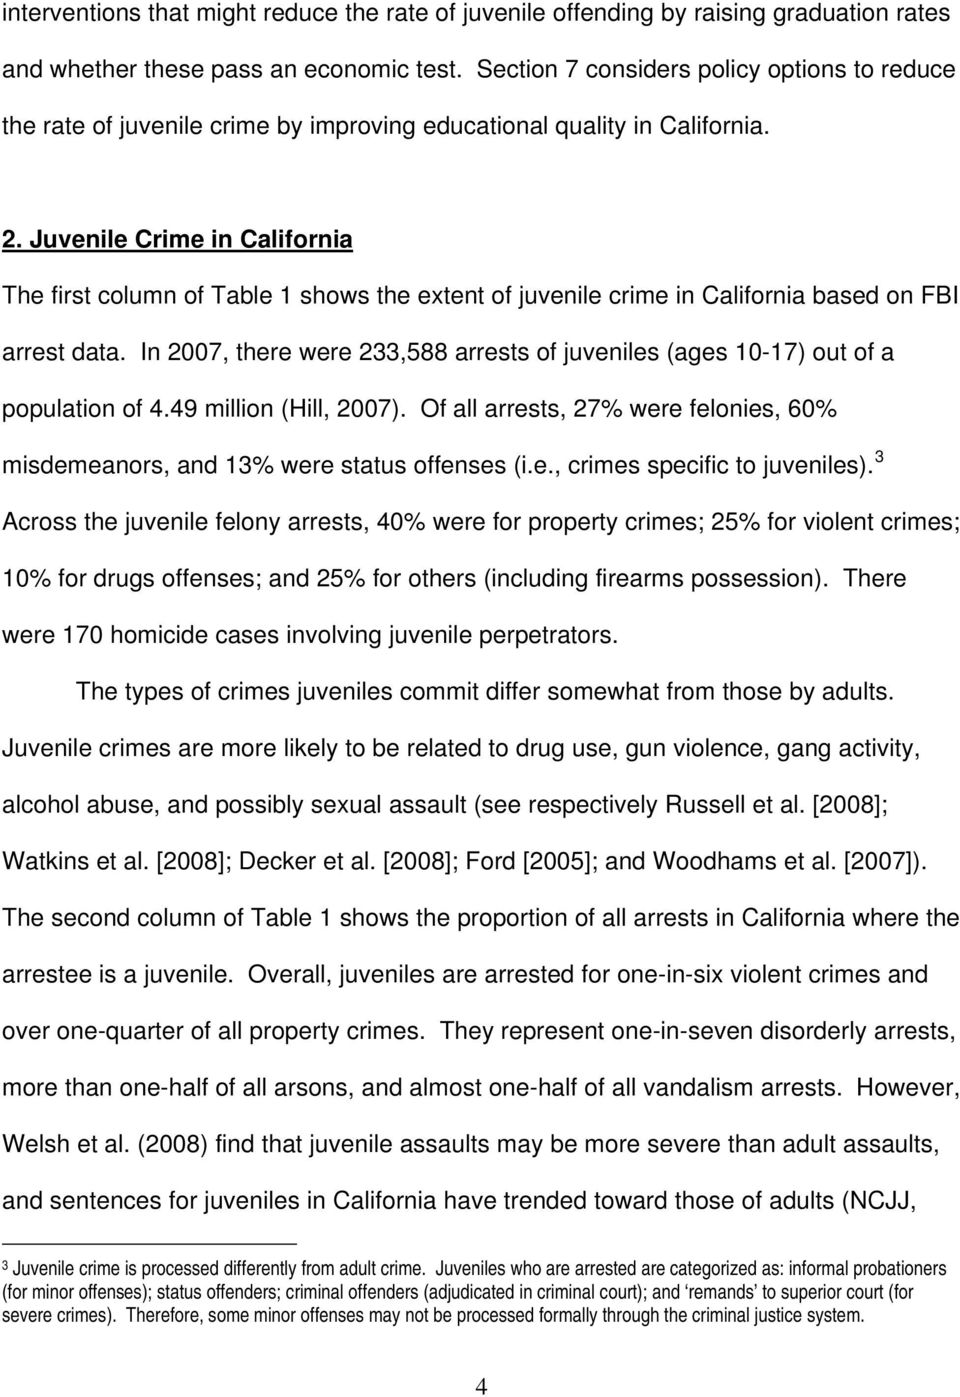 Juvenile Crime in California The first column of Table 1 shows the extent of juvenile crime in California based on FBI arrest data.